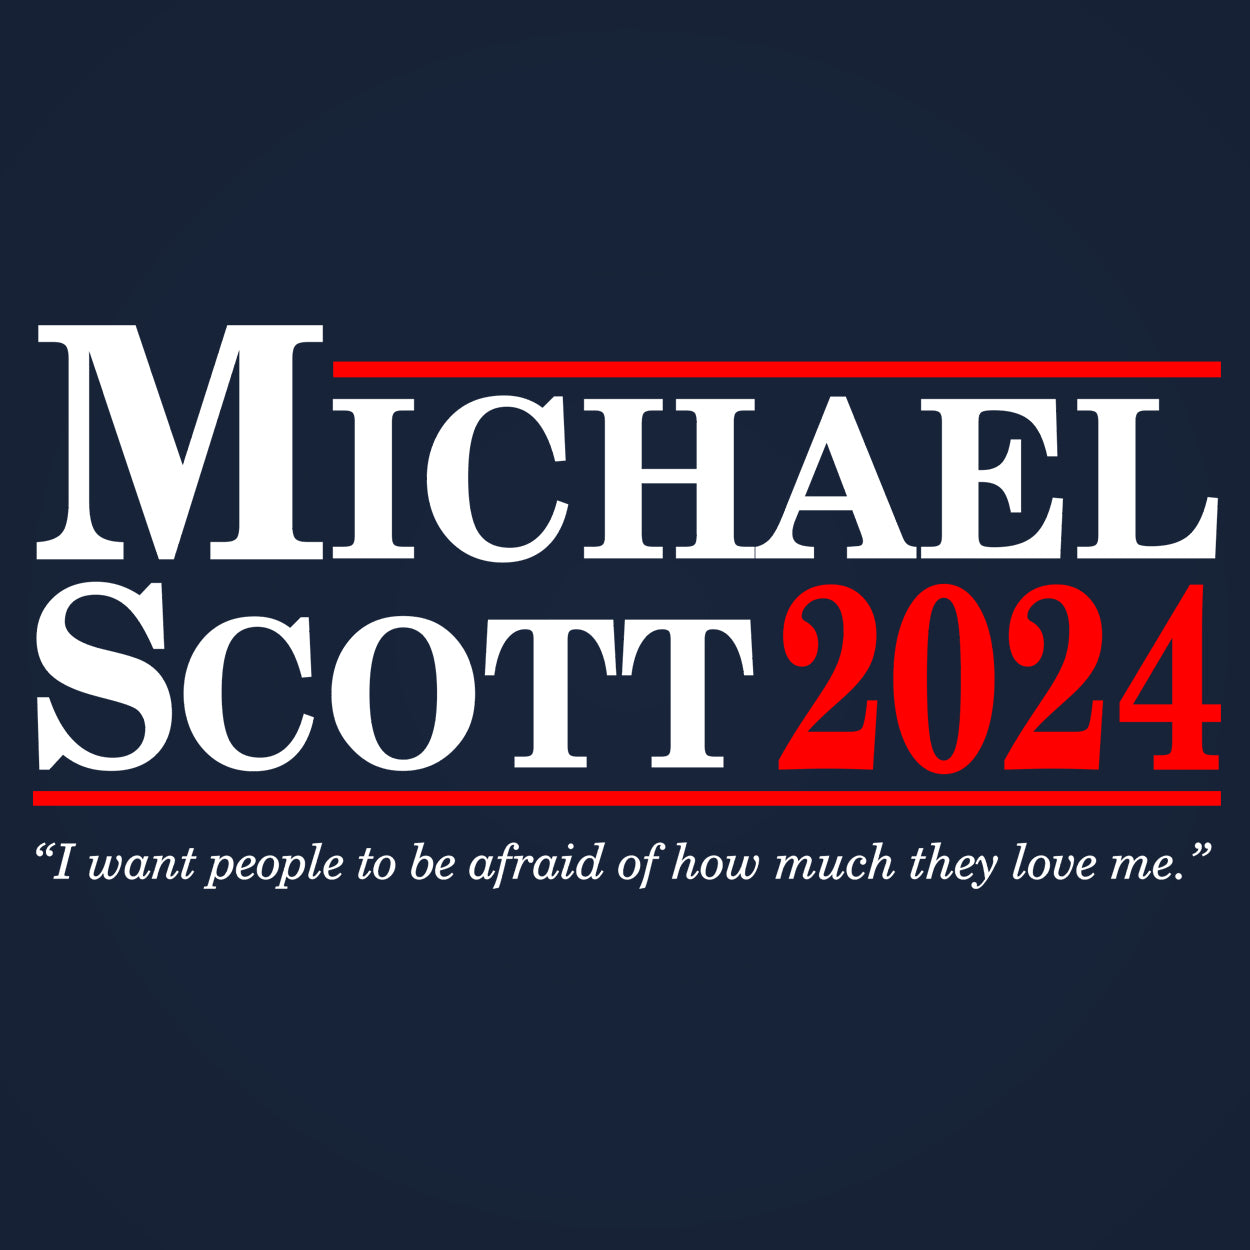 Michael Scott 2024 Election